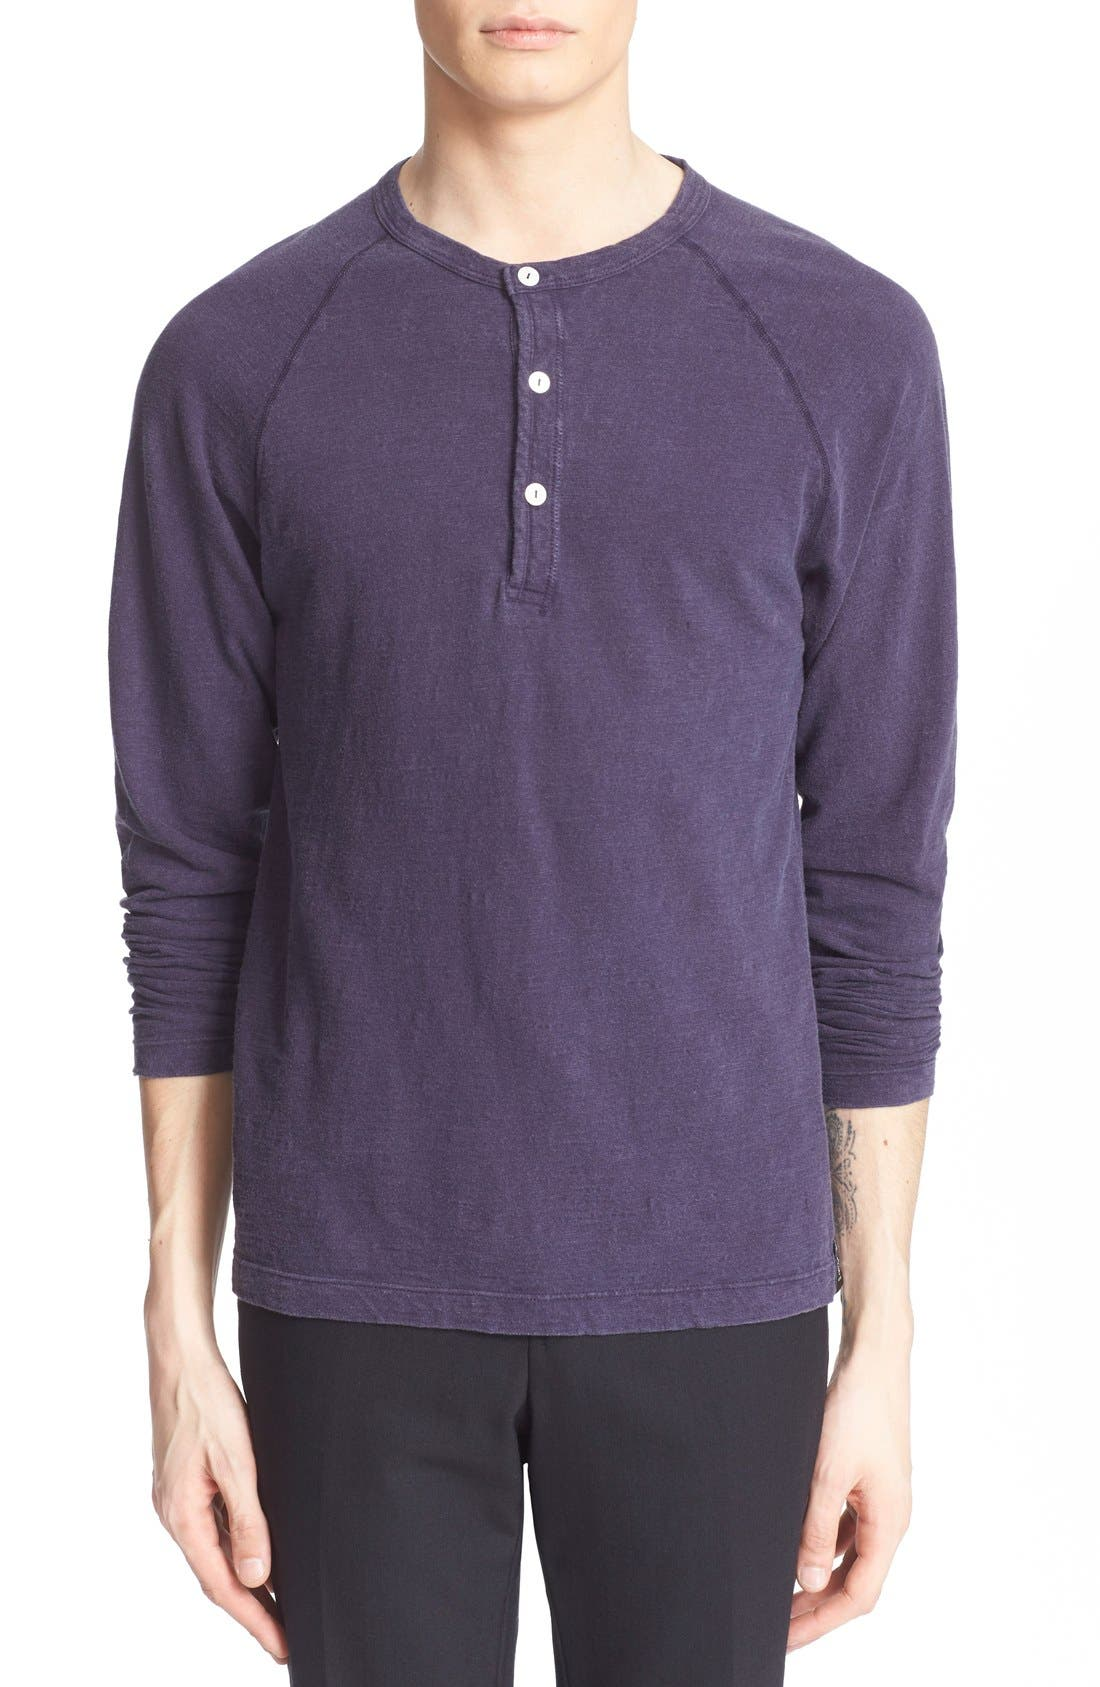 Alternate Image 1 Selected - Todd Snyder Long Sleeve Cotton Jersey Henley